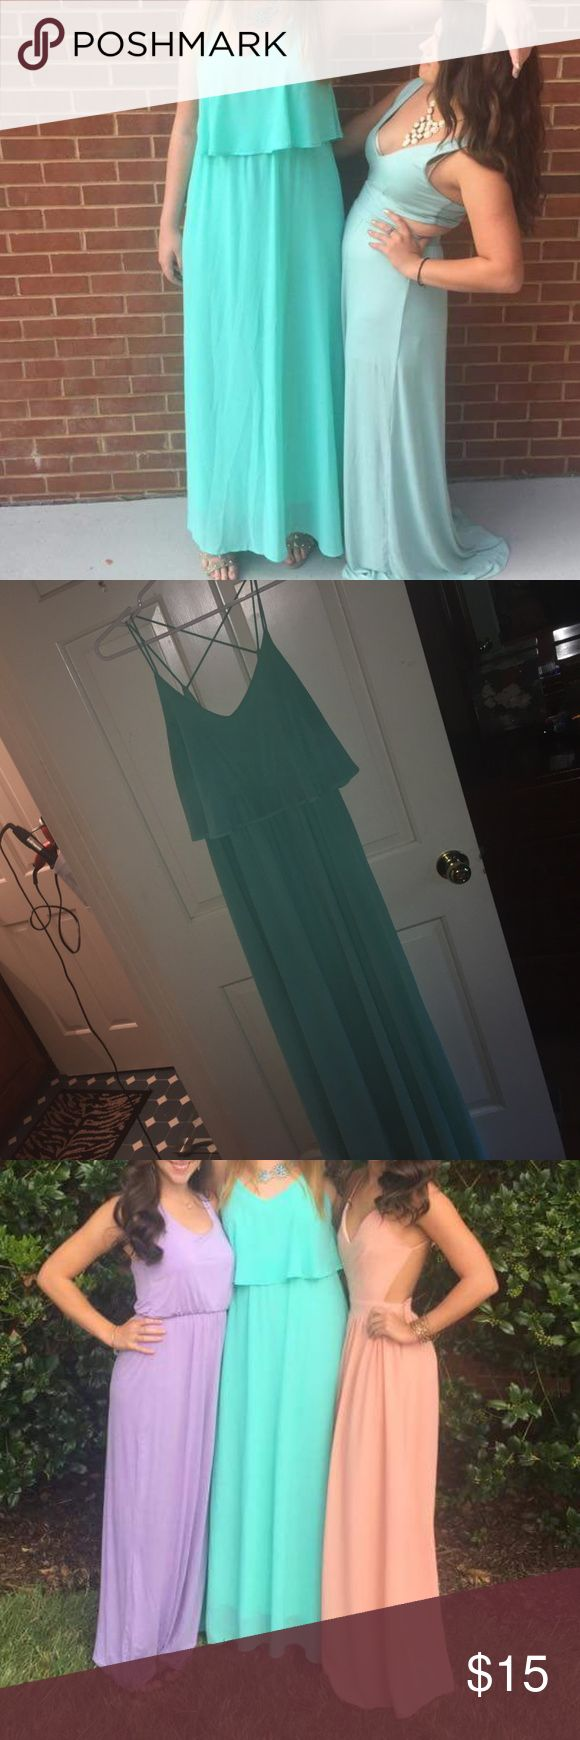 Boutique teal or aquamarine maxi dress Beautiful maxi dress PERFECT condition worn once for recruitment! Everly Dresses Maxi